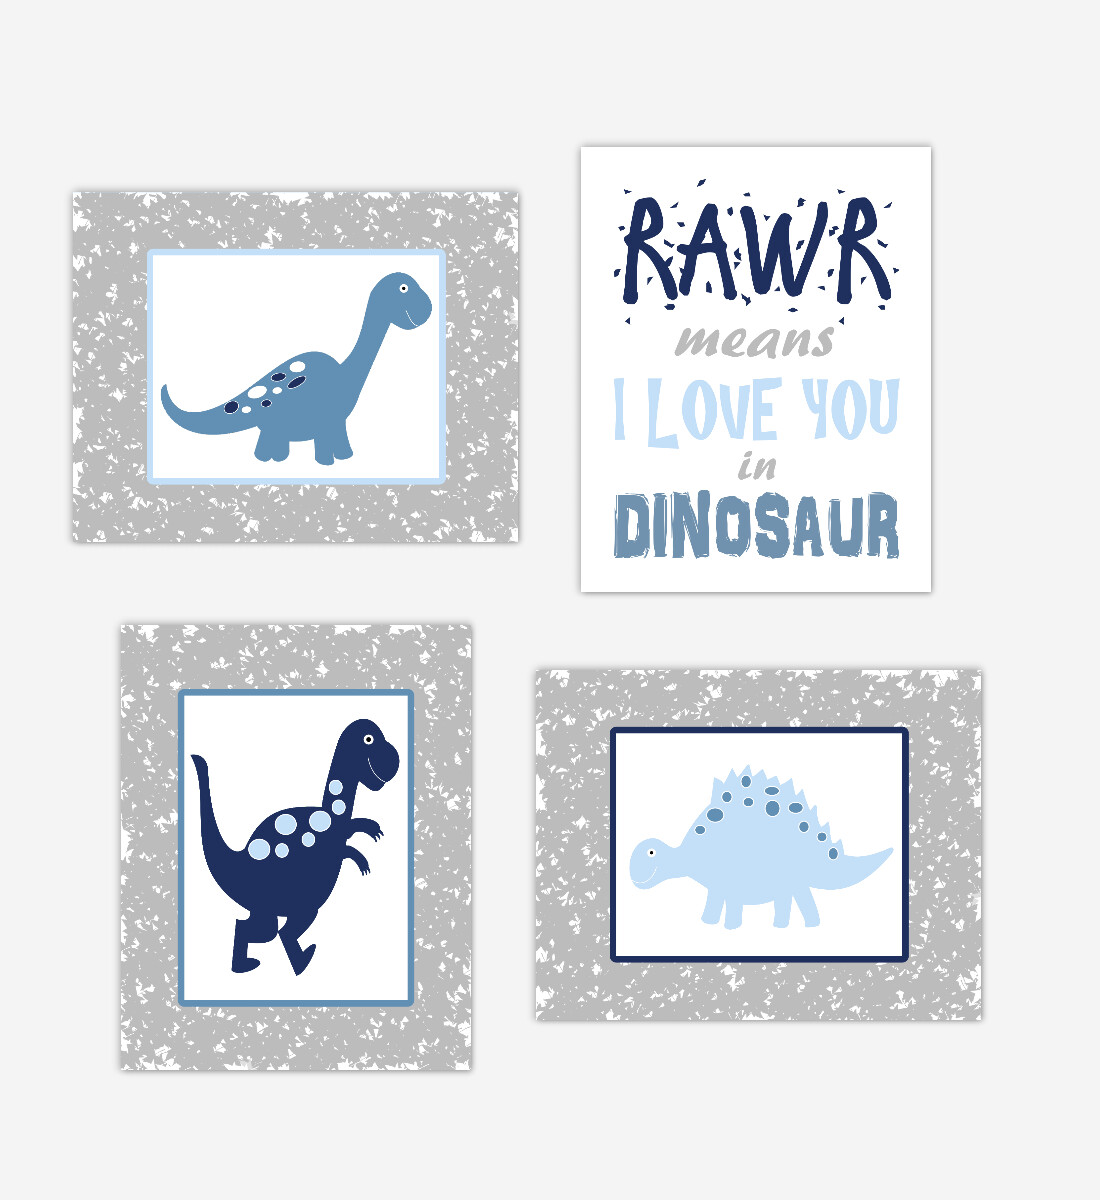 Dinosaur Baby Boy Nursery Wall Art Navy Blue Gray Dinos Print Baby Nursery Decor Playroom RAWR Means I Love You In Dinosaur